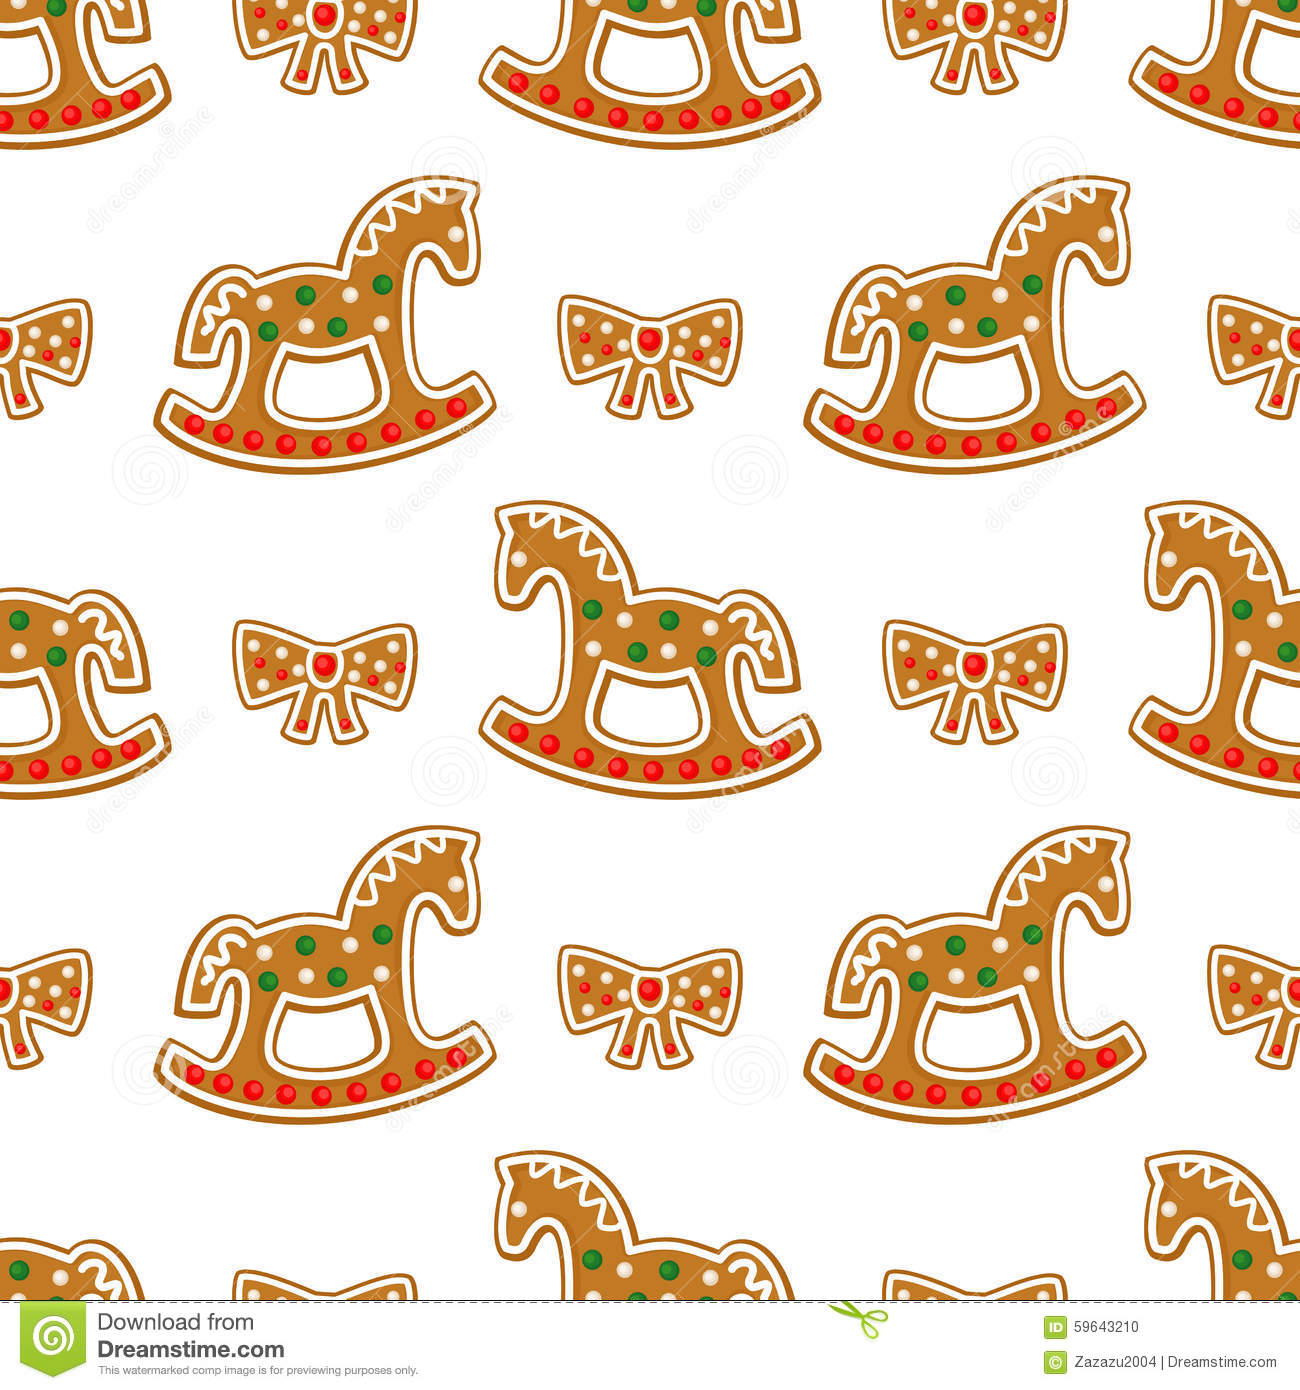 Christmas Horse Rocking Stock Illustrations 973 Christmas Horse Rocking Stock Illustrations Vectors Clipart Dreamstime